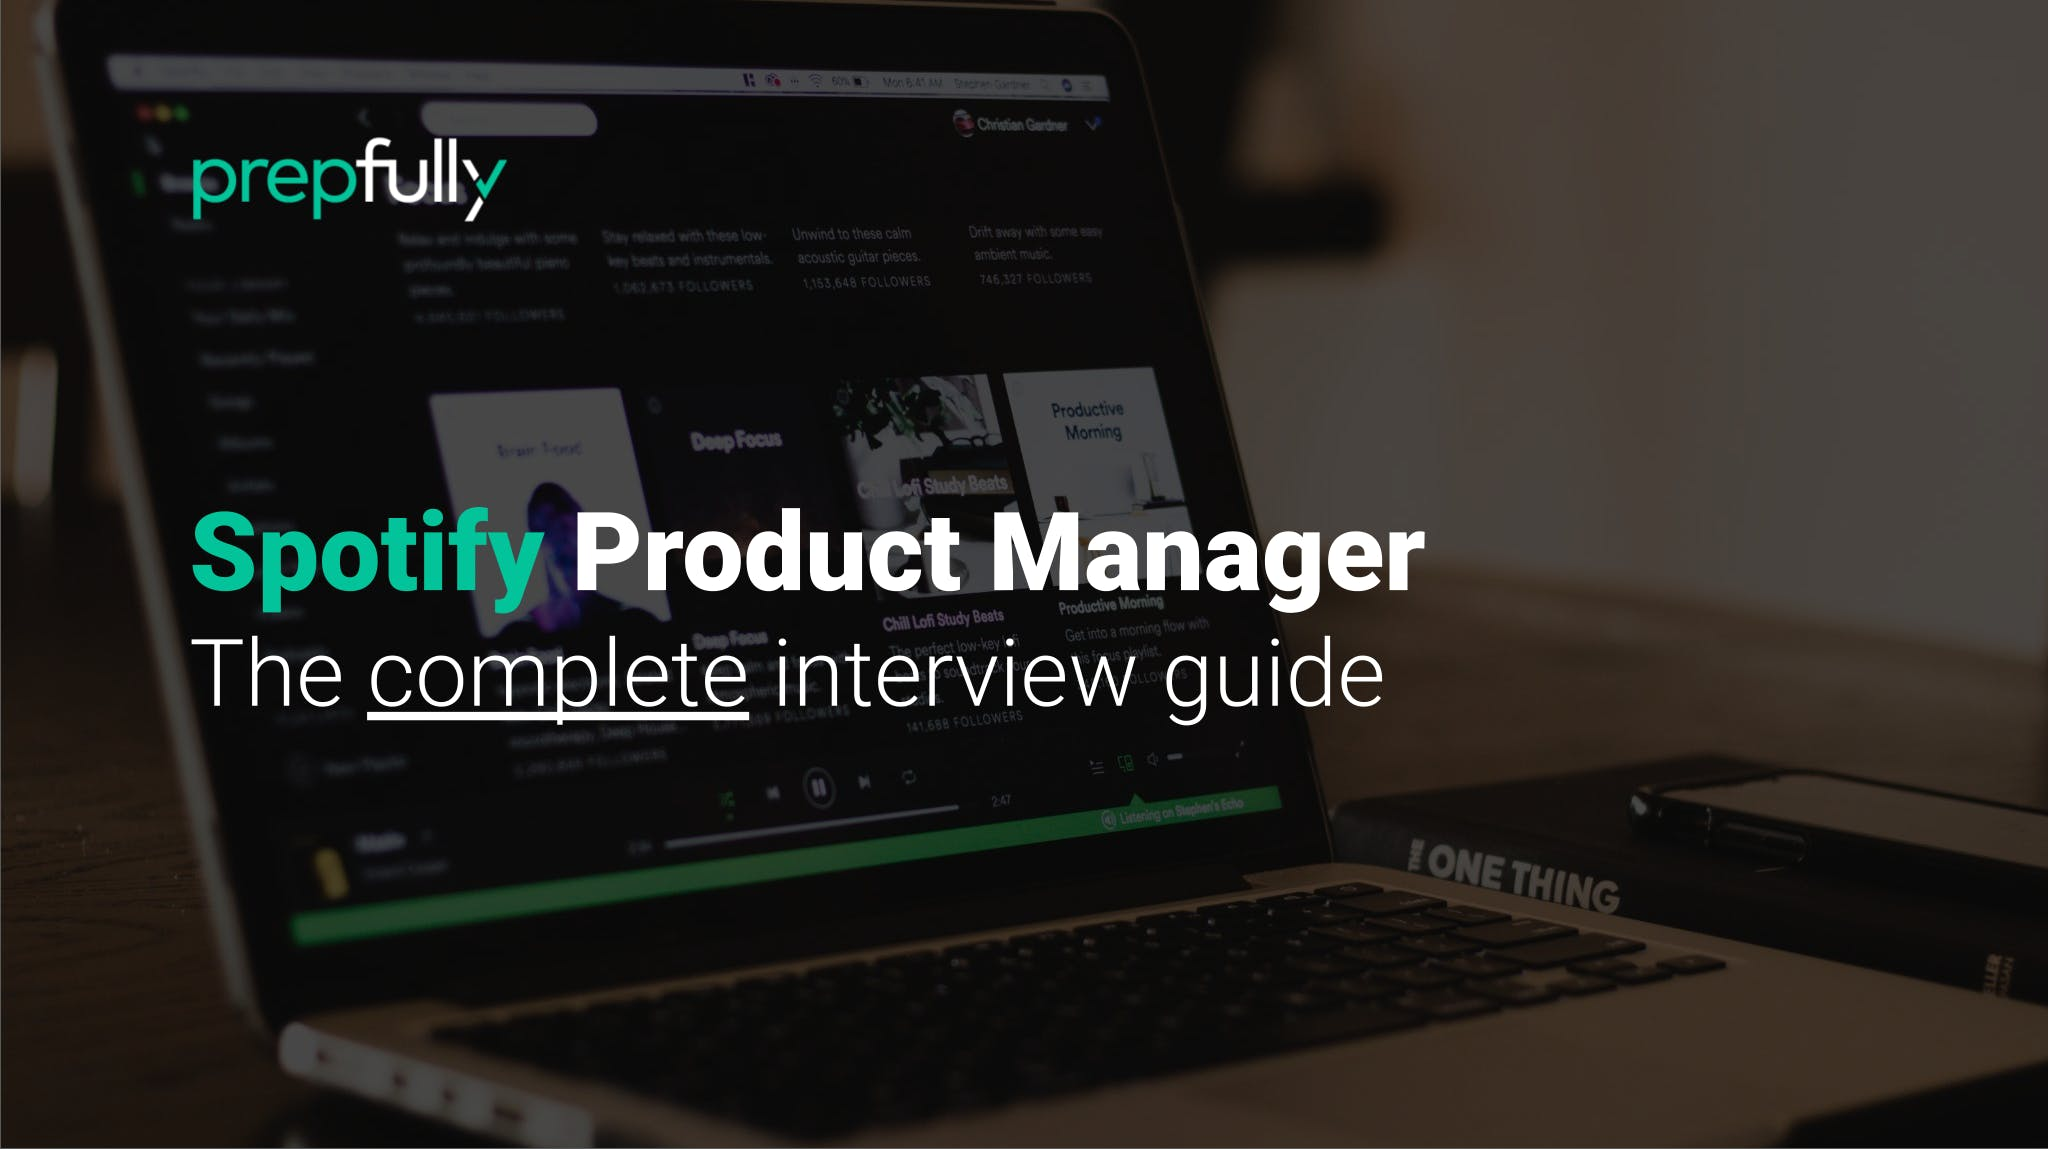 Interview guide for Spotify Product Manager